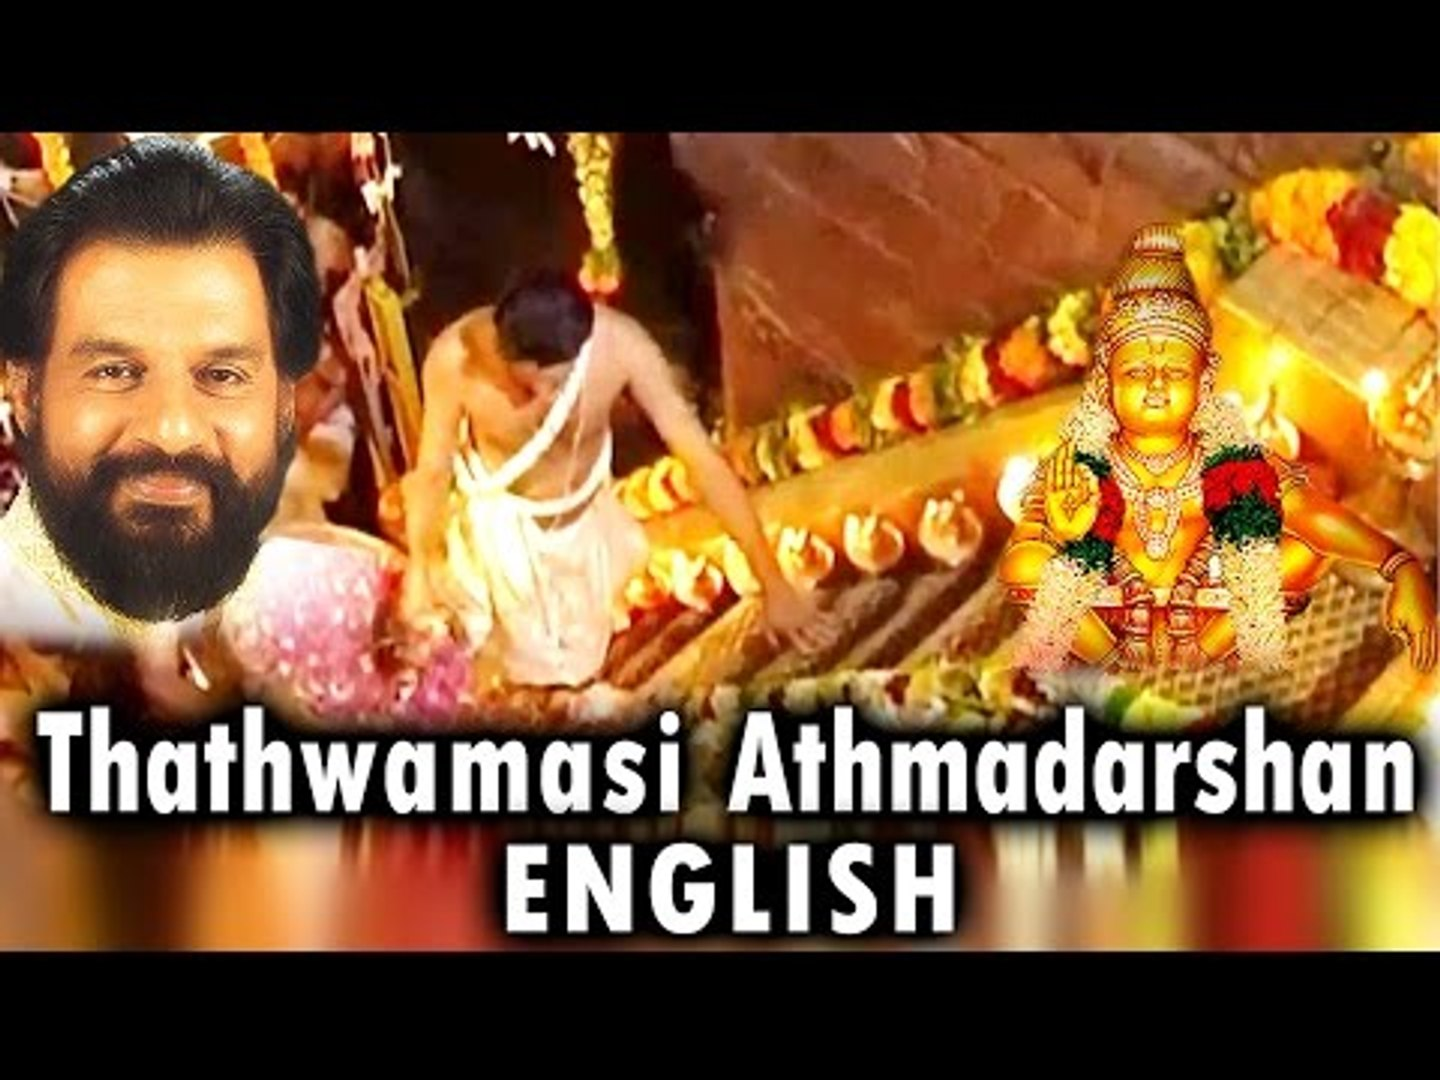 Thathwamasi Athmadarshan English | Documentary For Lord Ayyappa Swami | Hindu Devotional Songs